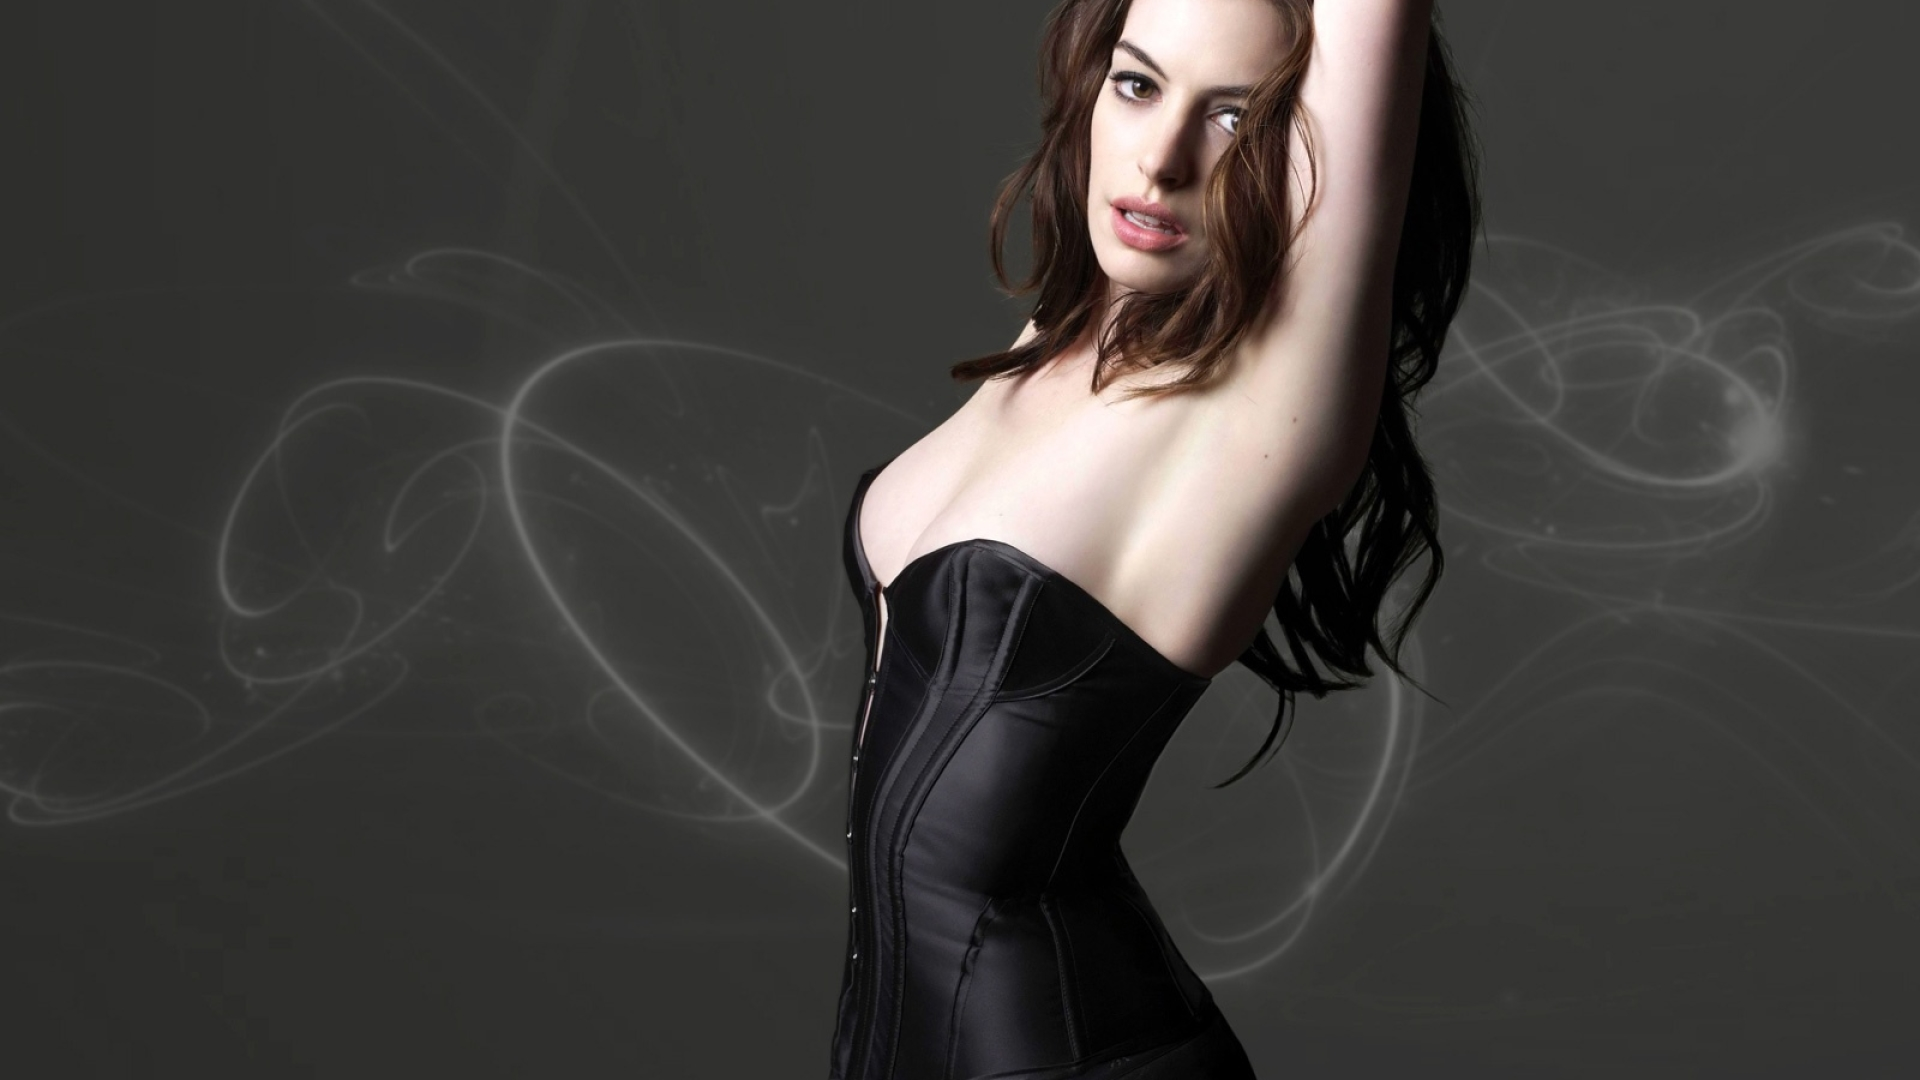 1920x1080 Anne Hathaway Sexy Hd Wallpapers 1080p Laptop Full